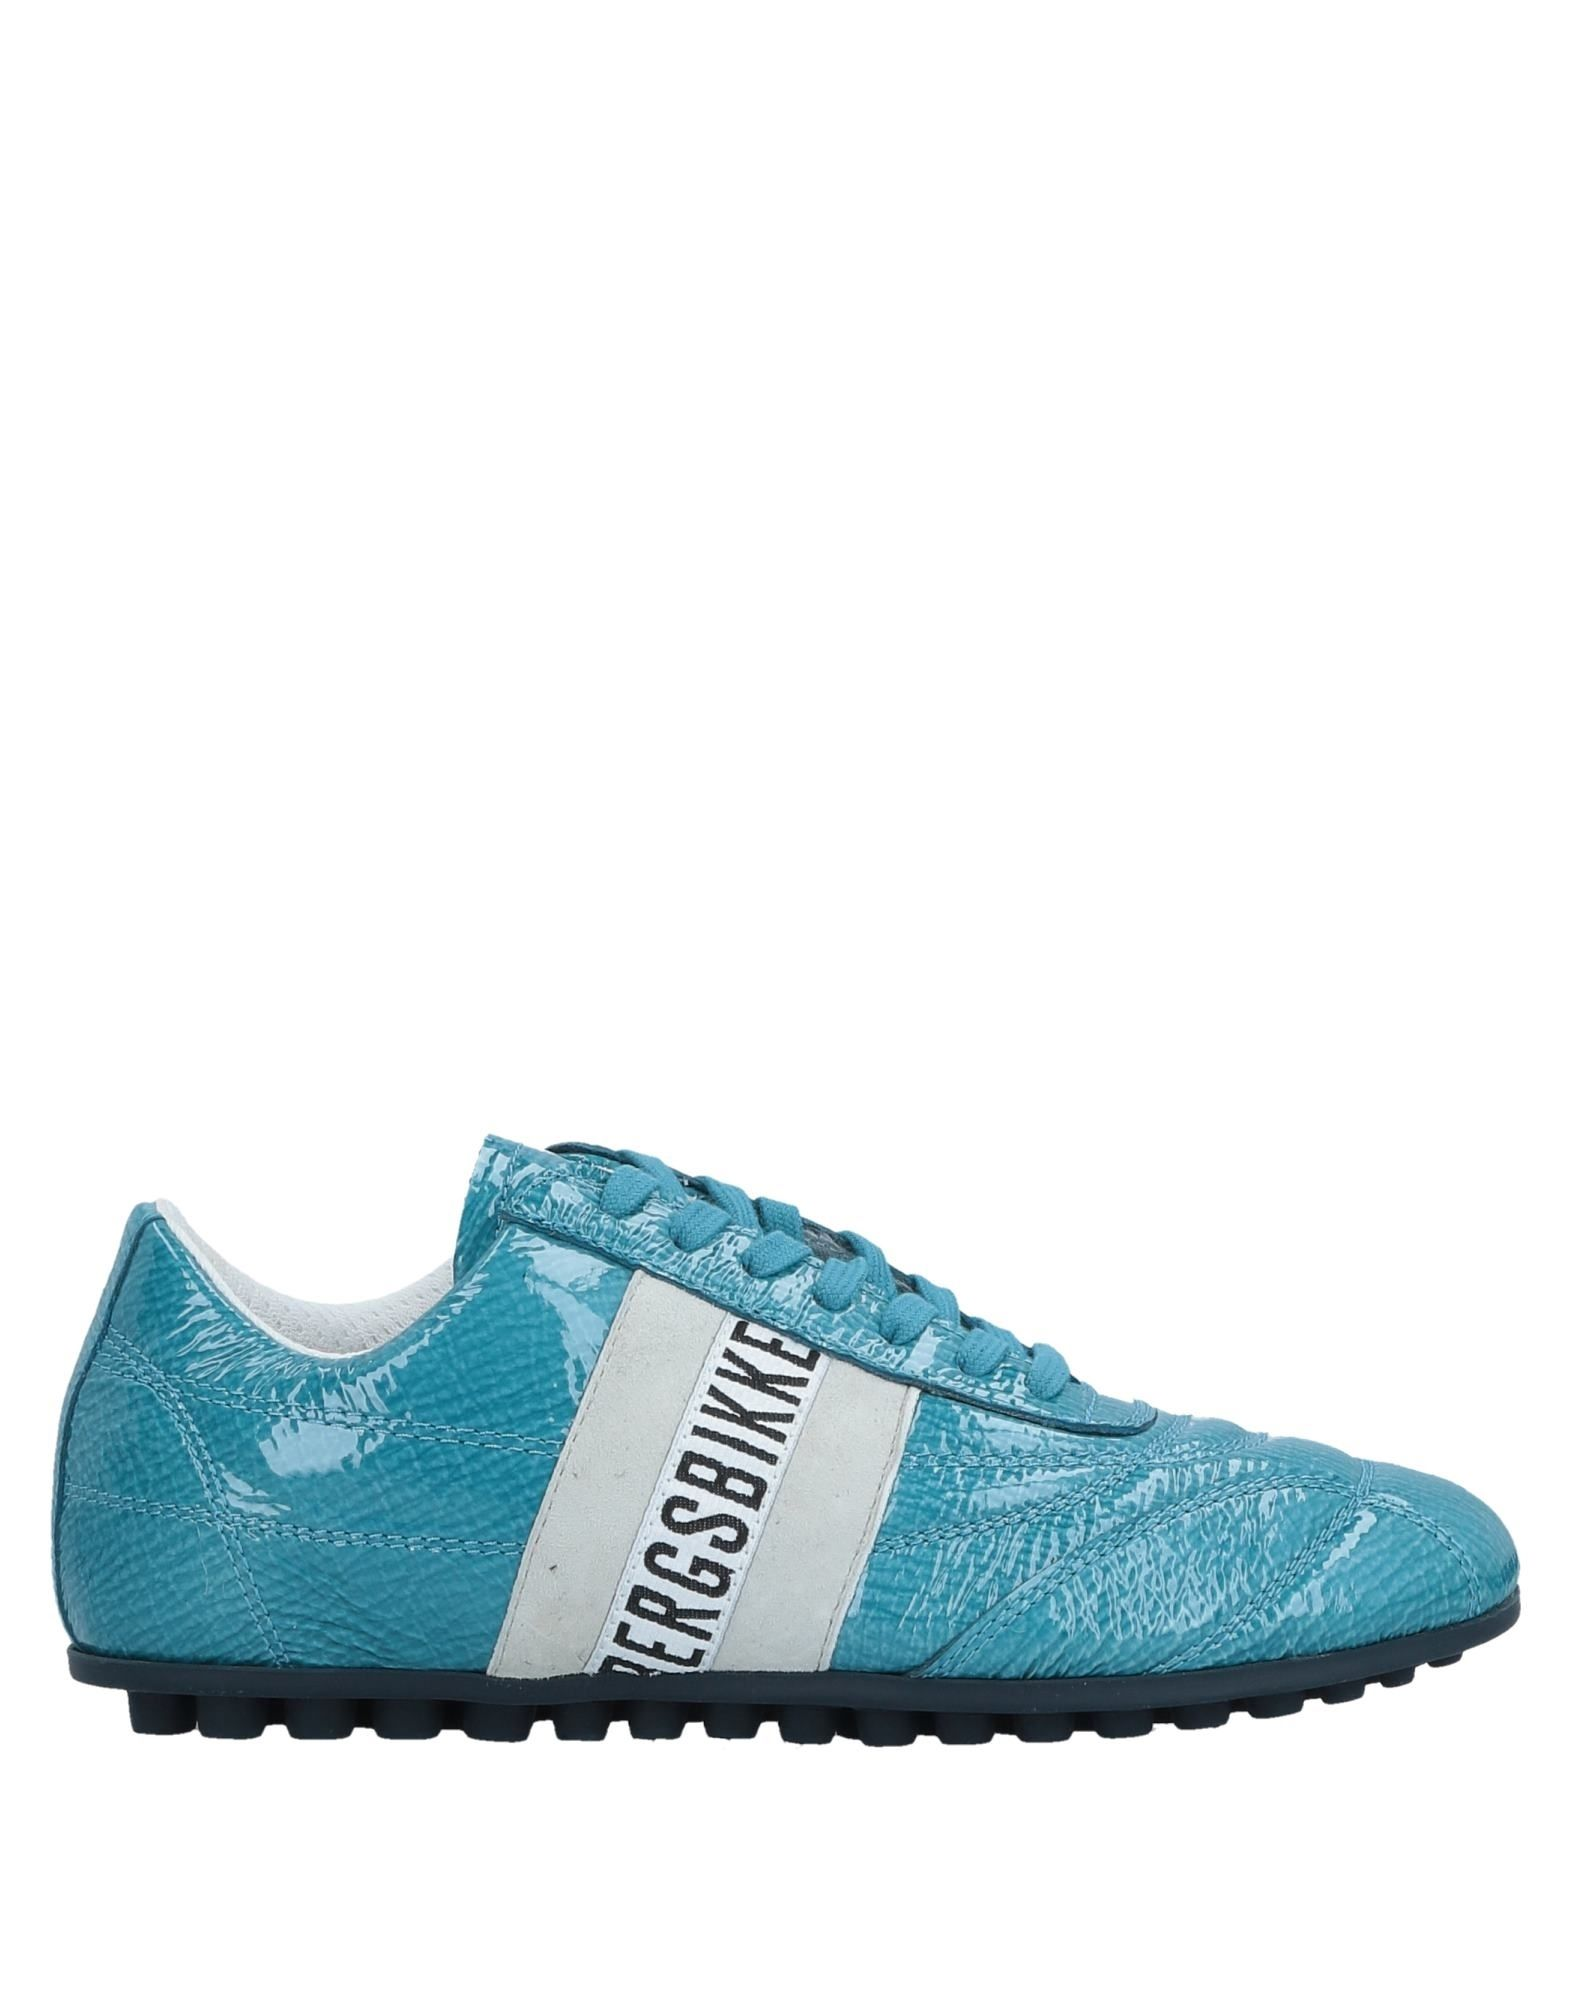 A buon mercato Sneakers Bikkembergs Donna - 11521855DC